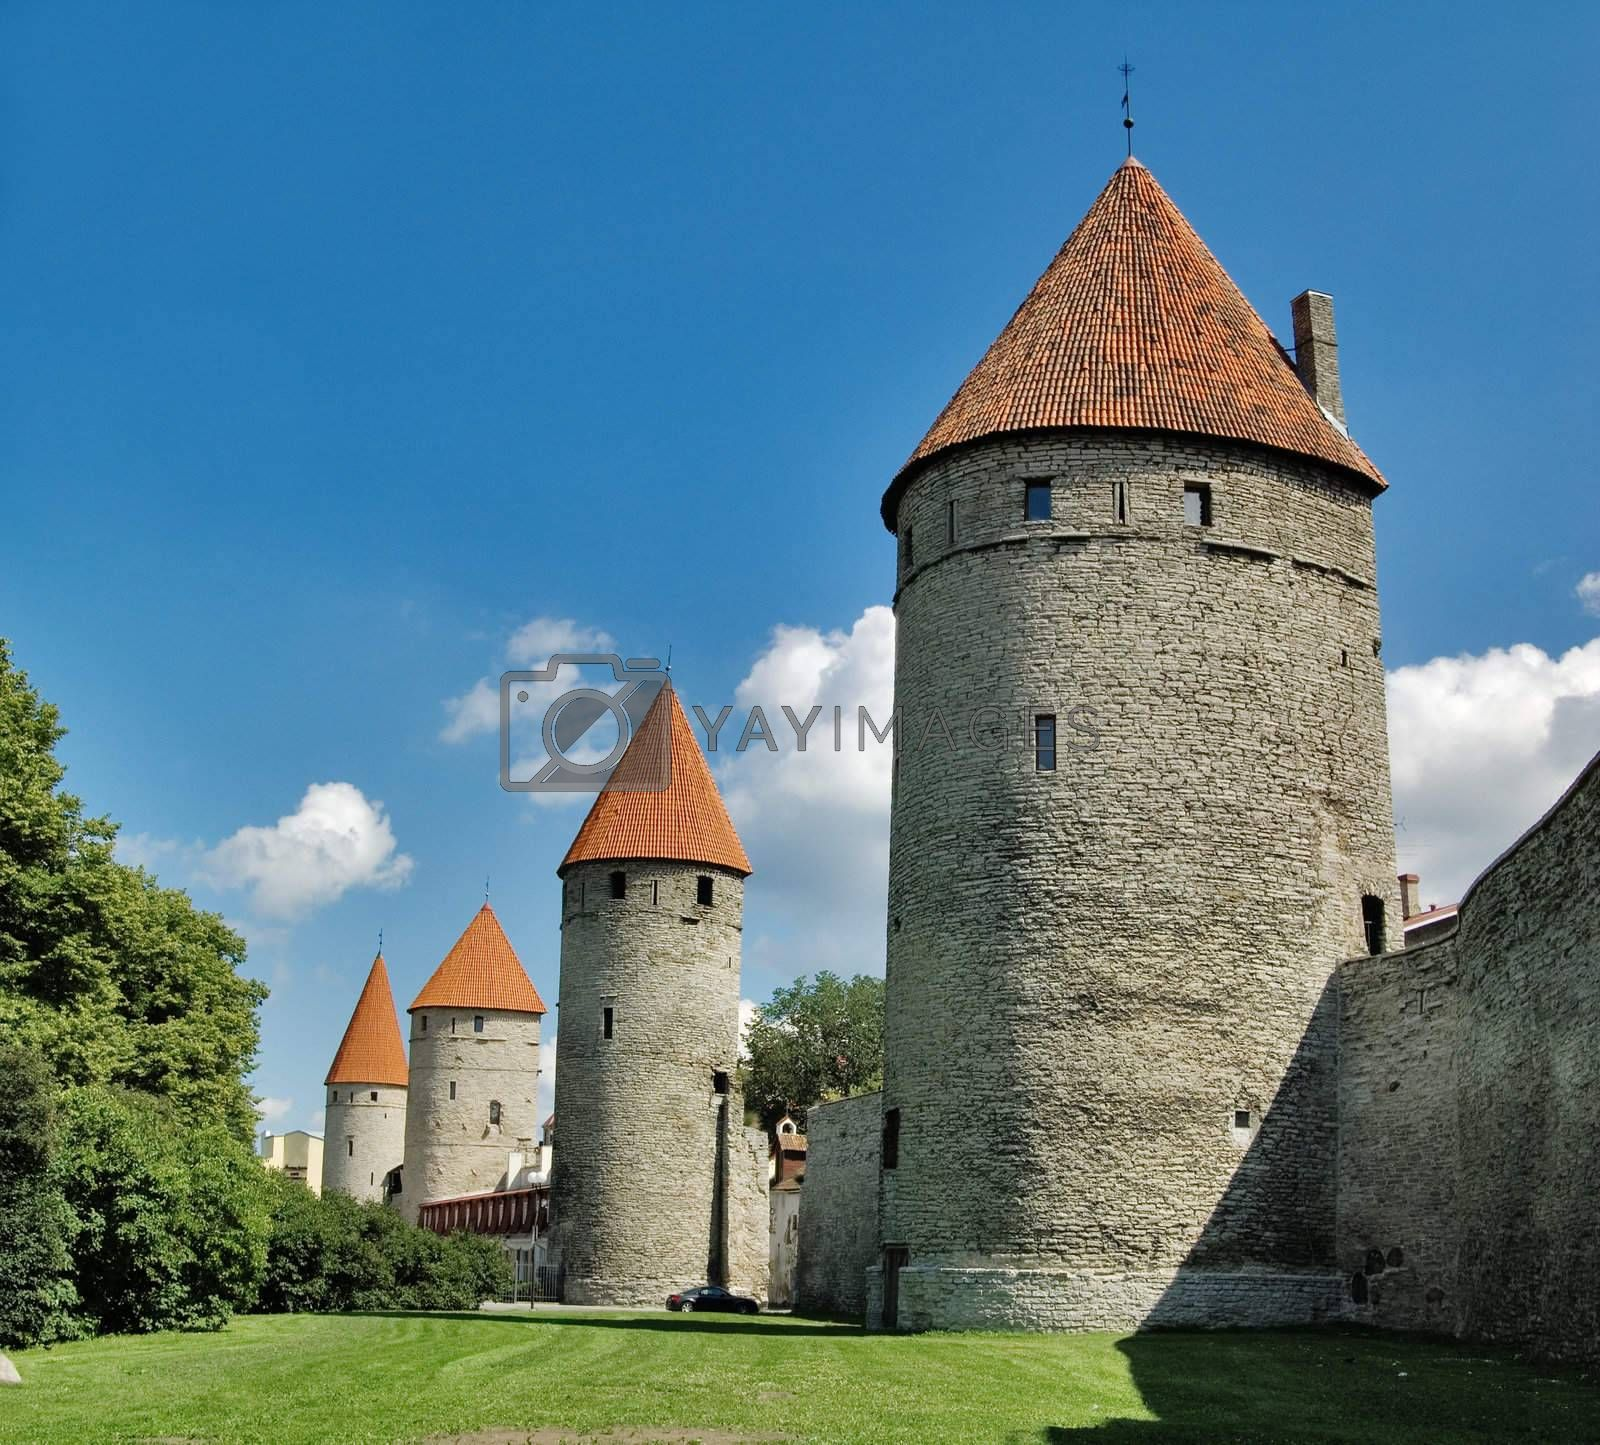 Tallinn. Towers in a fortification.